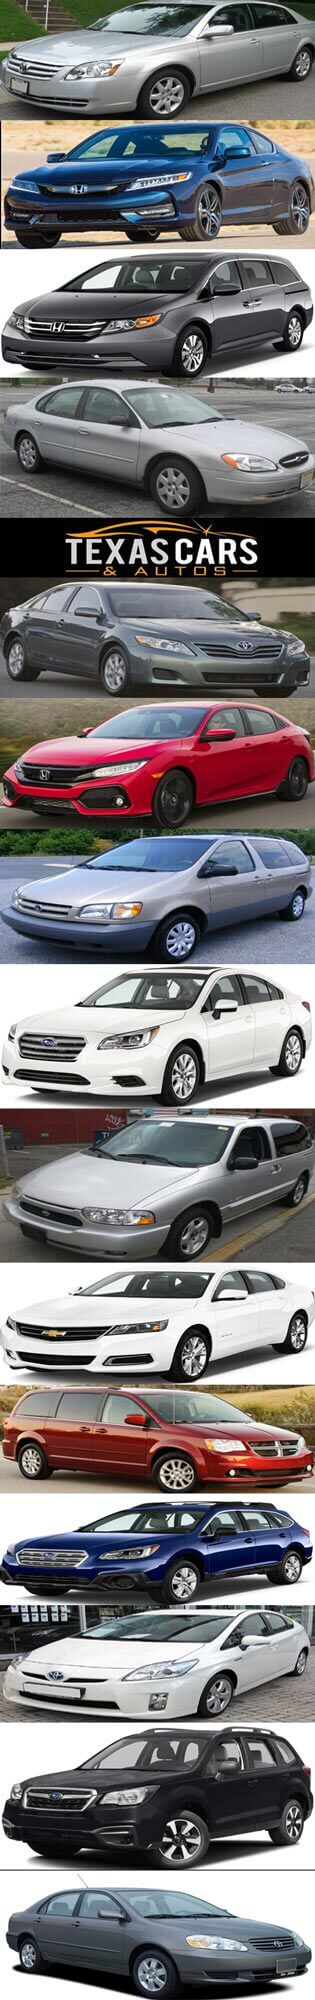 Used Cars For Sale That Can Go 200,000 Miles (With images